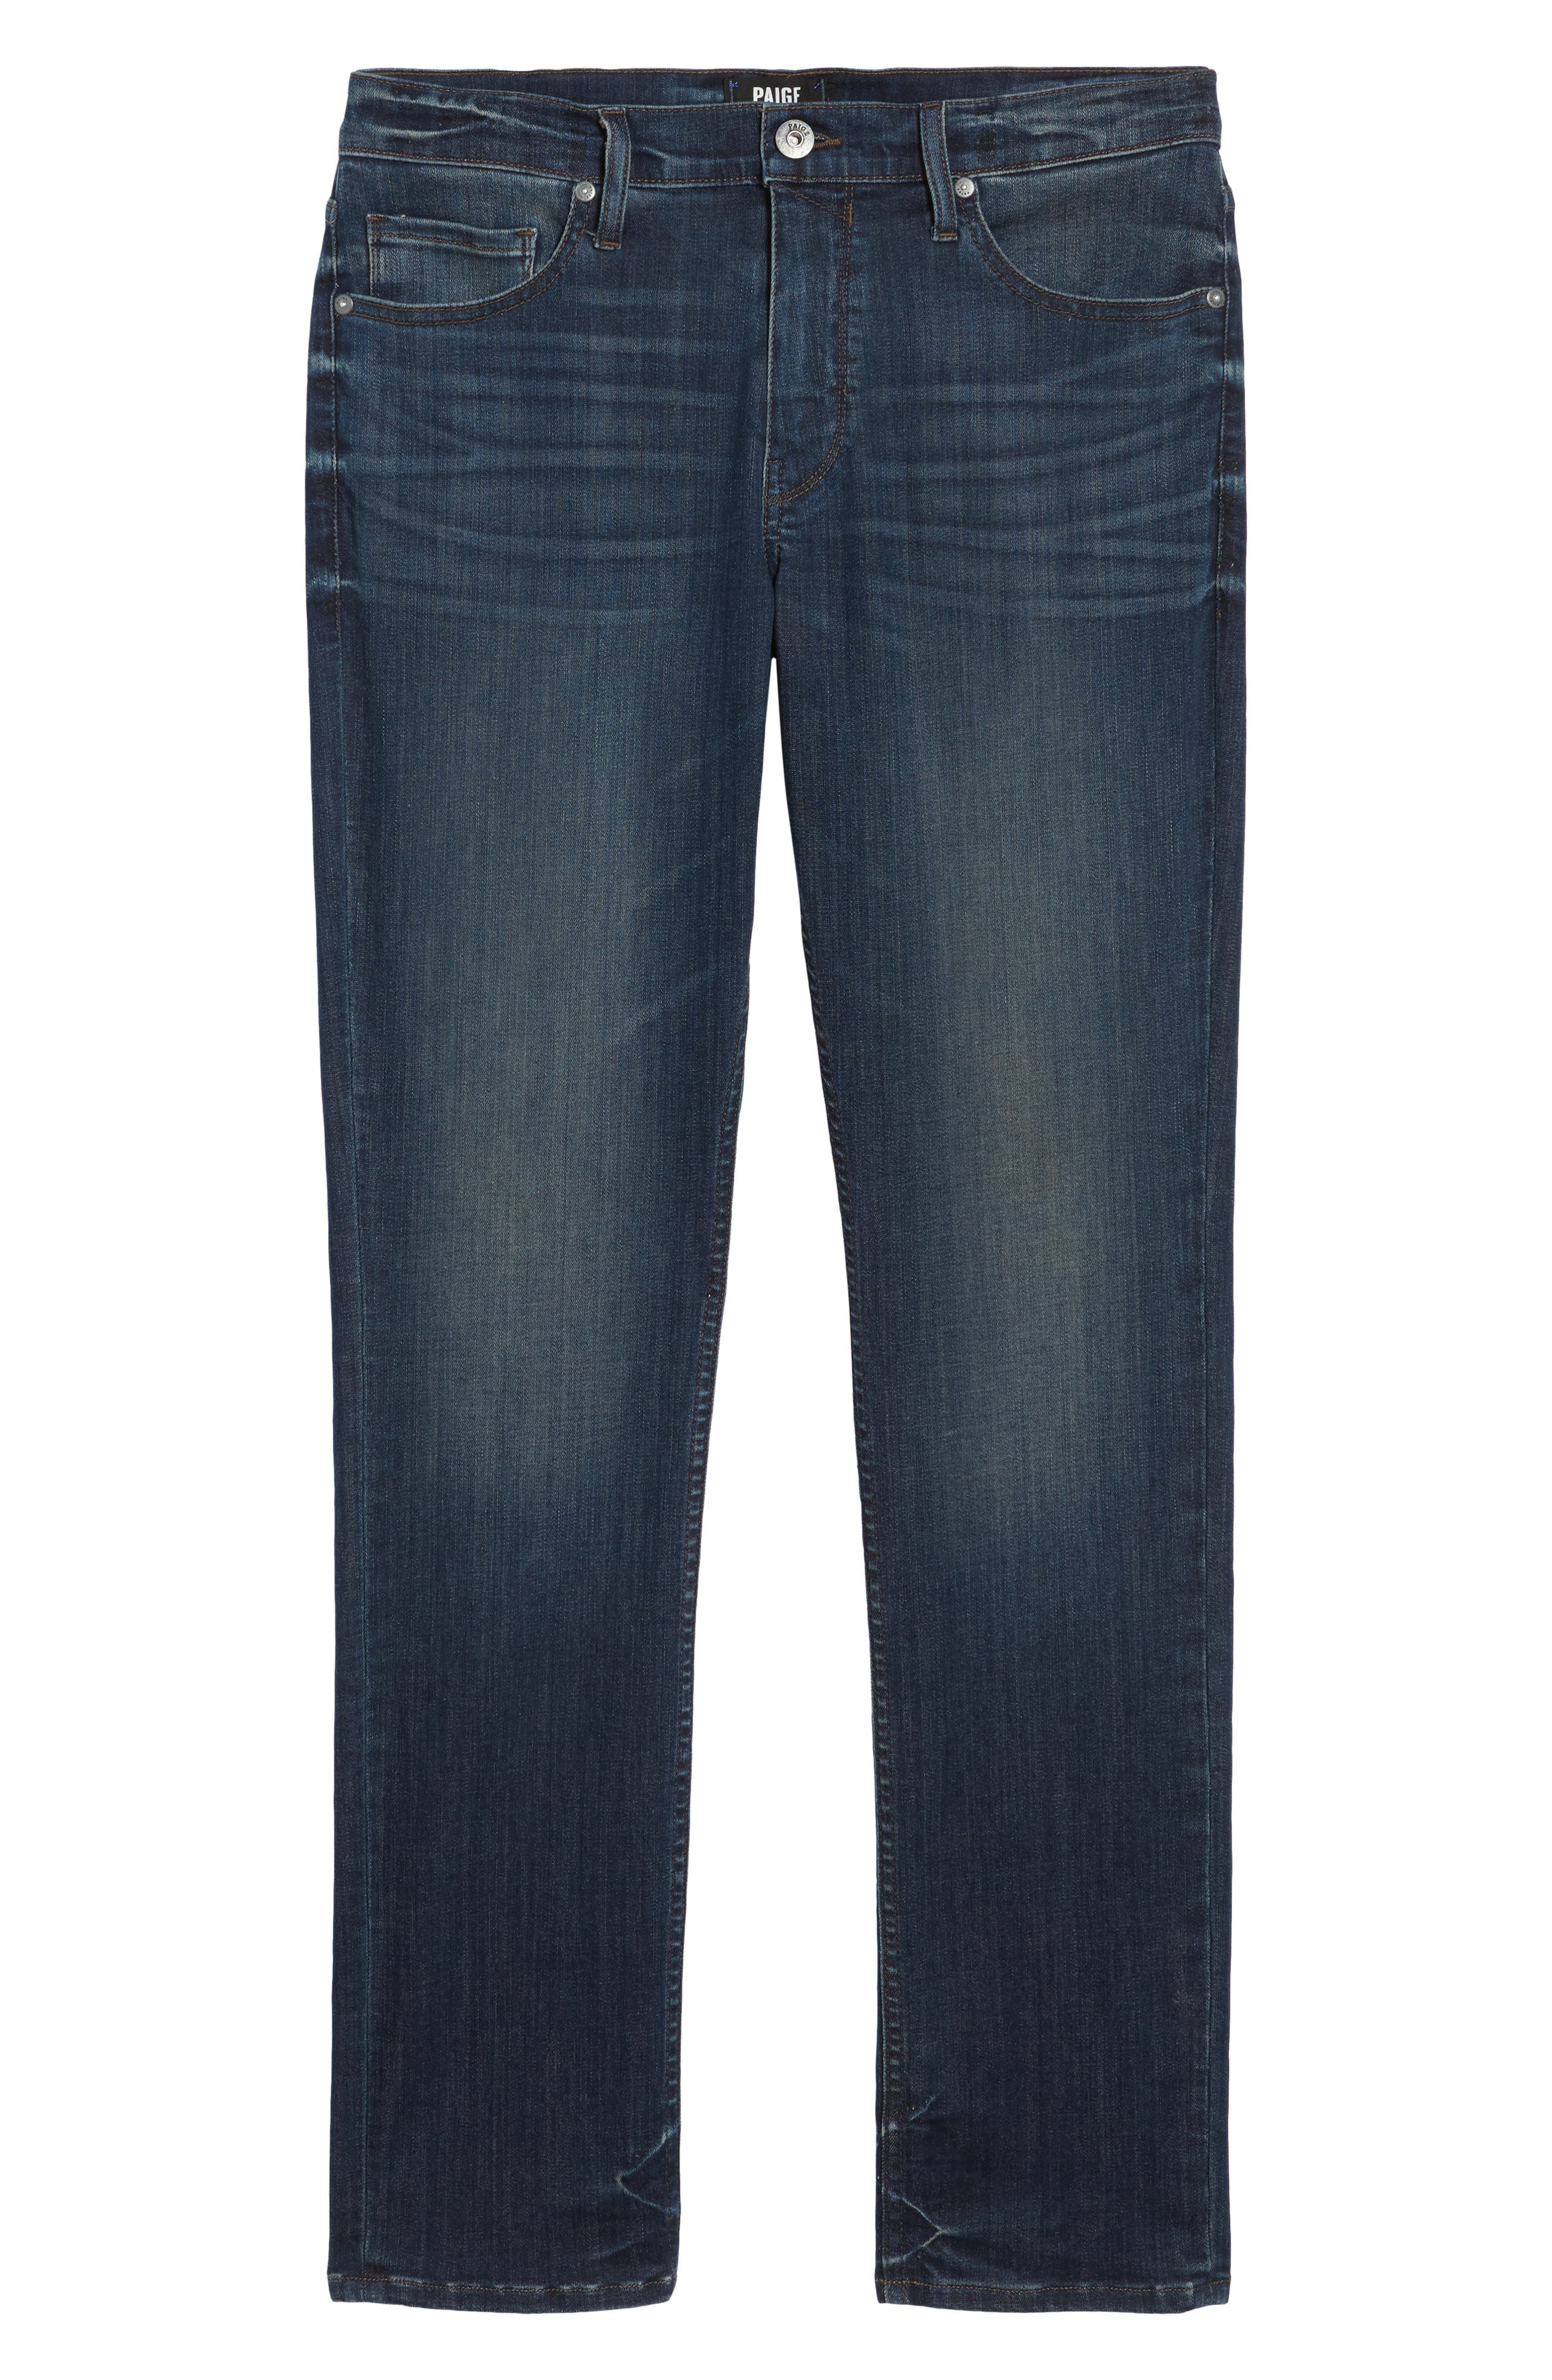 Transcend - Lennox Slim Fit Jeans,                             Alternate thumbnail 6, color,                             400